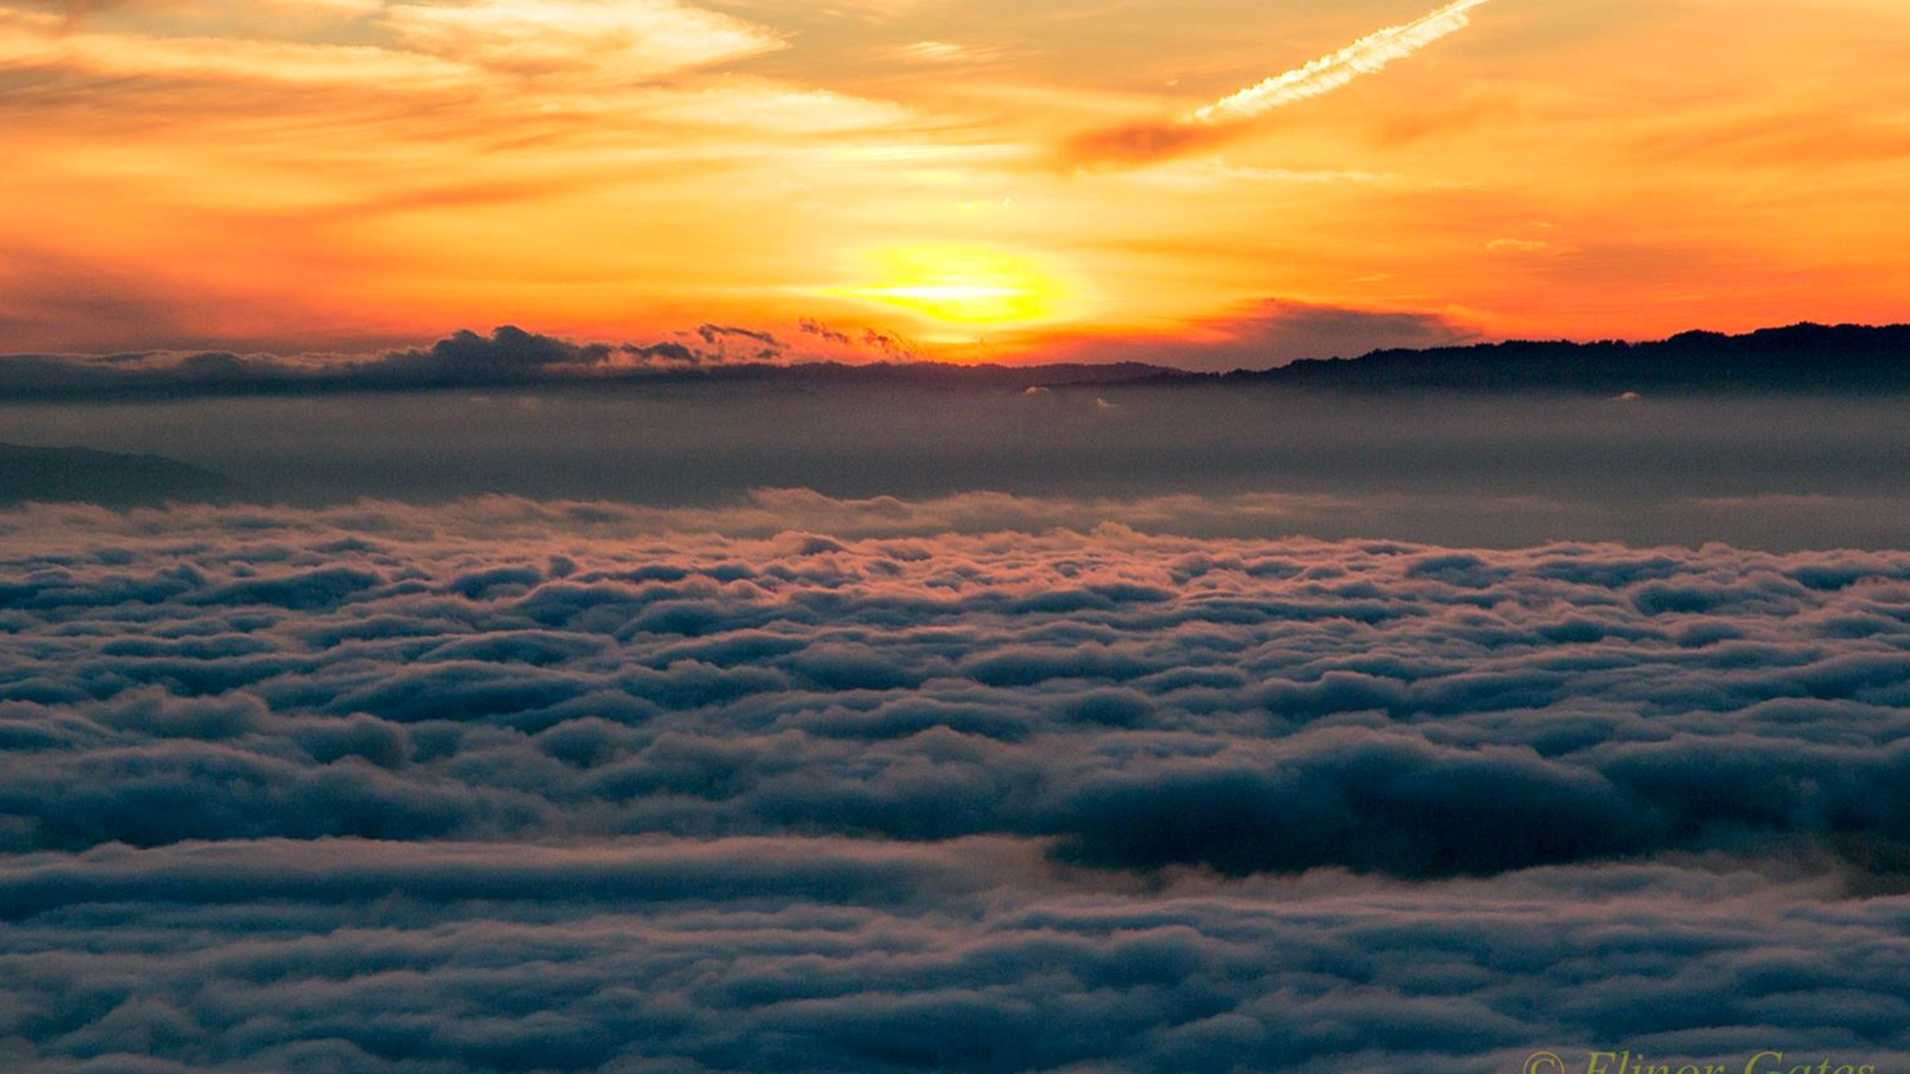 A sweeping view above the clouds at Lick Observatory